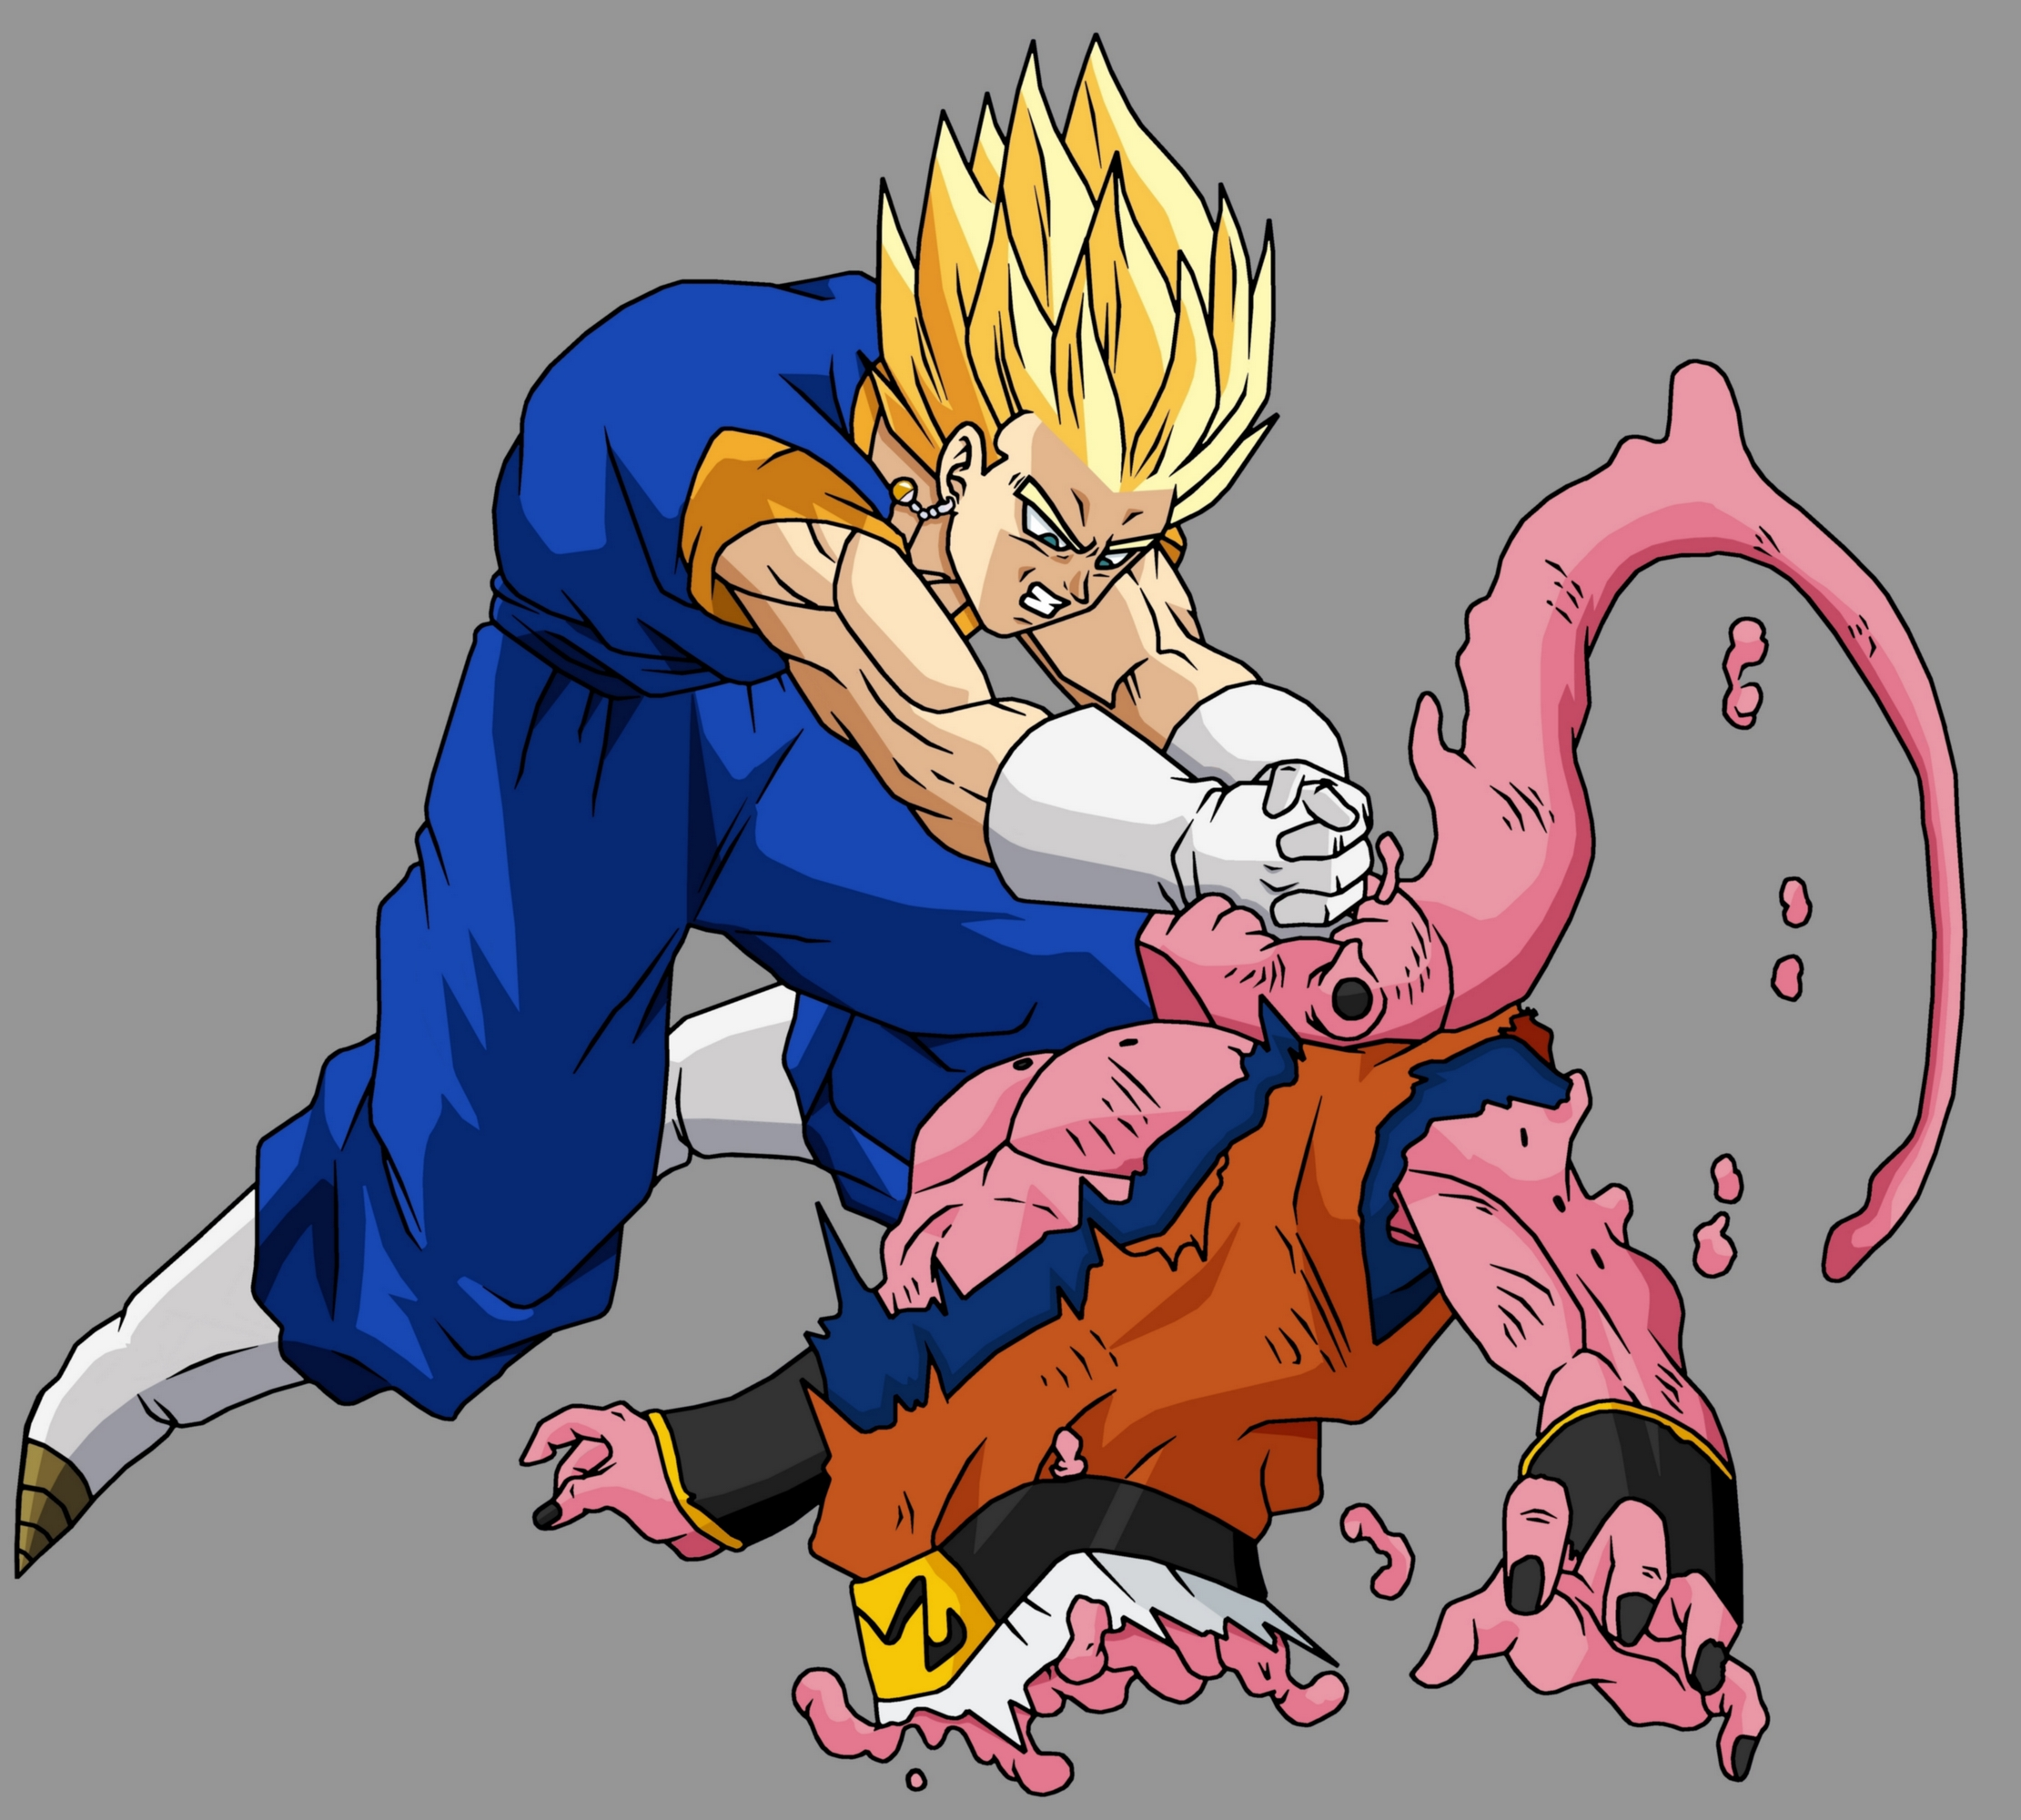 84712_vegetto_punches_buu_complete_122_151lo.jpg